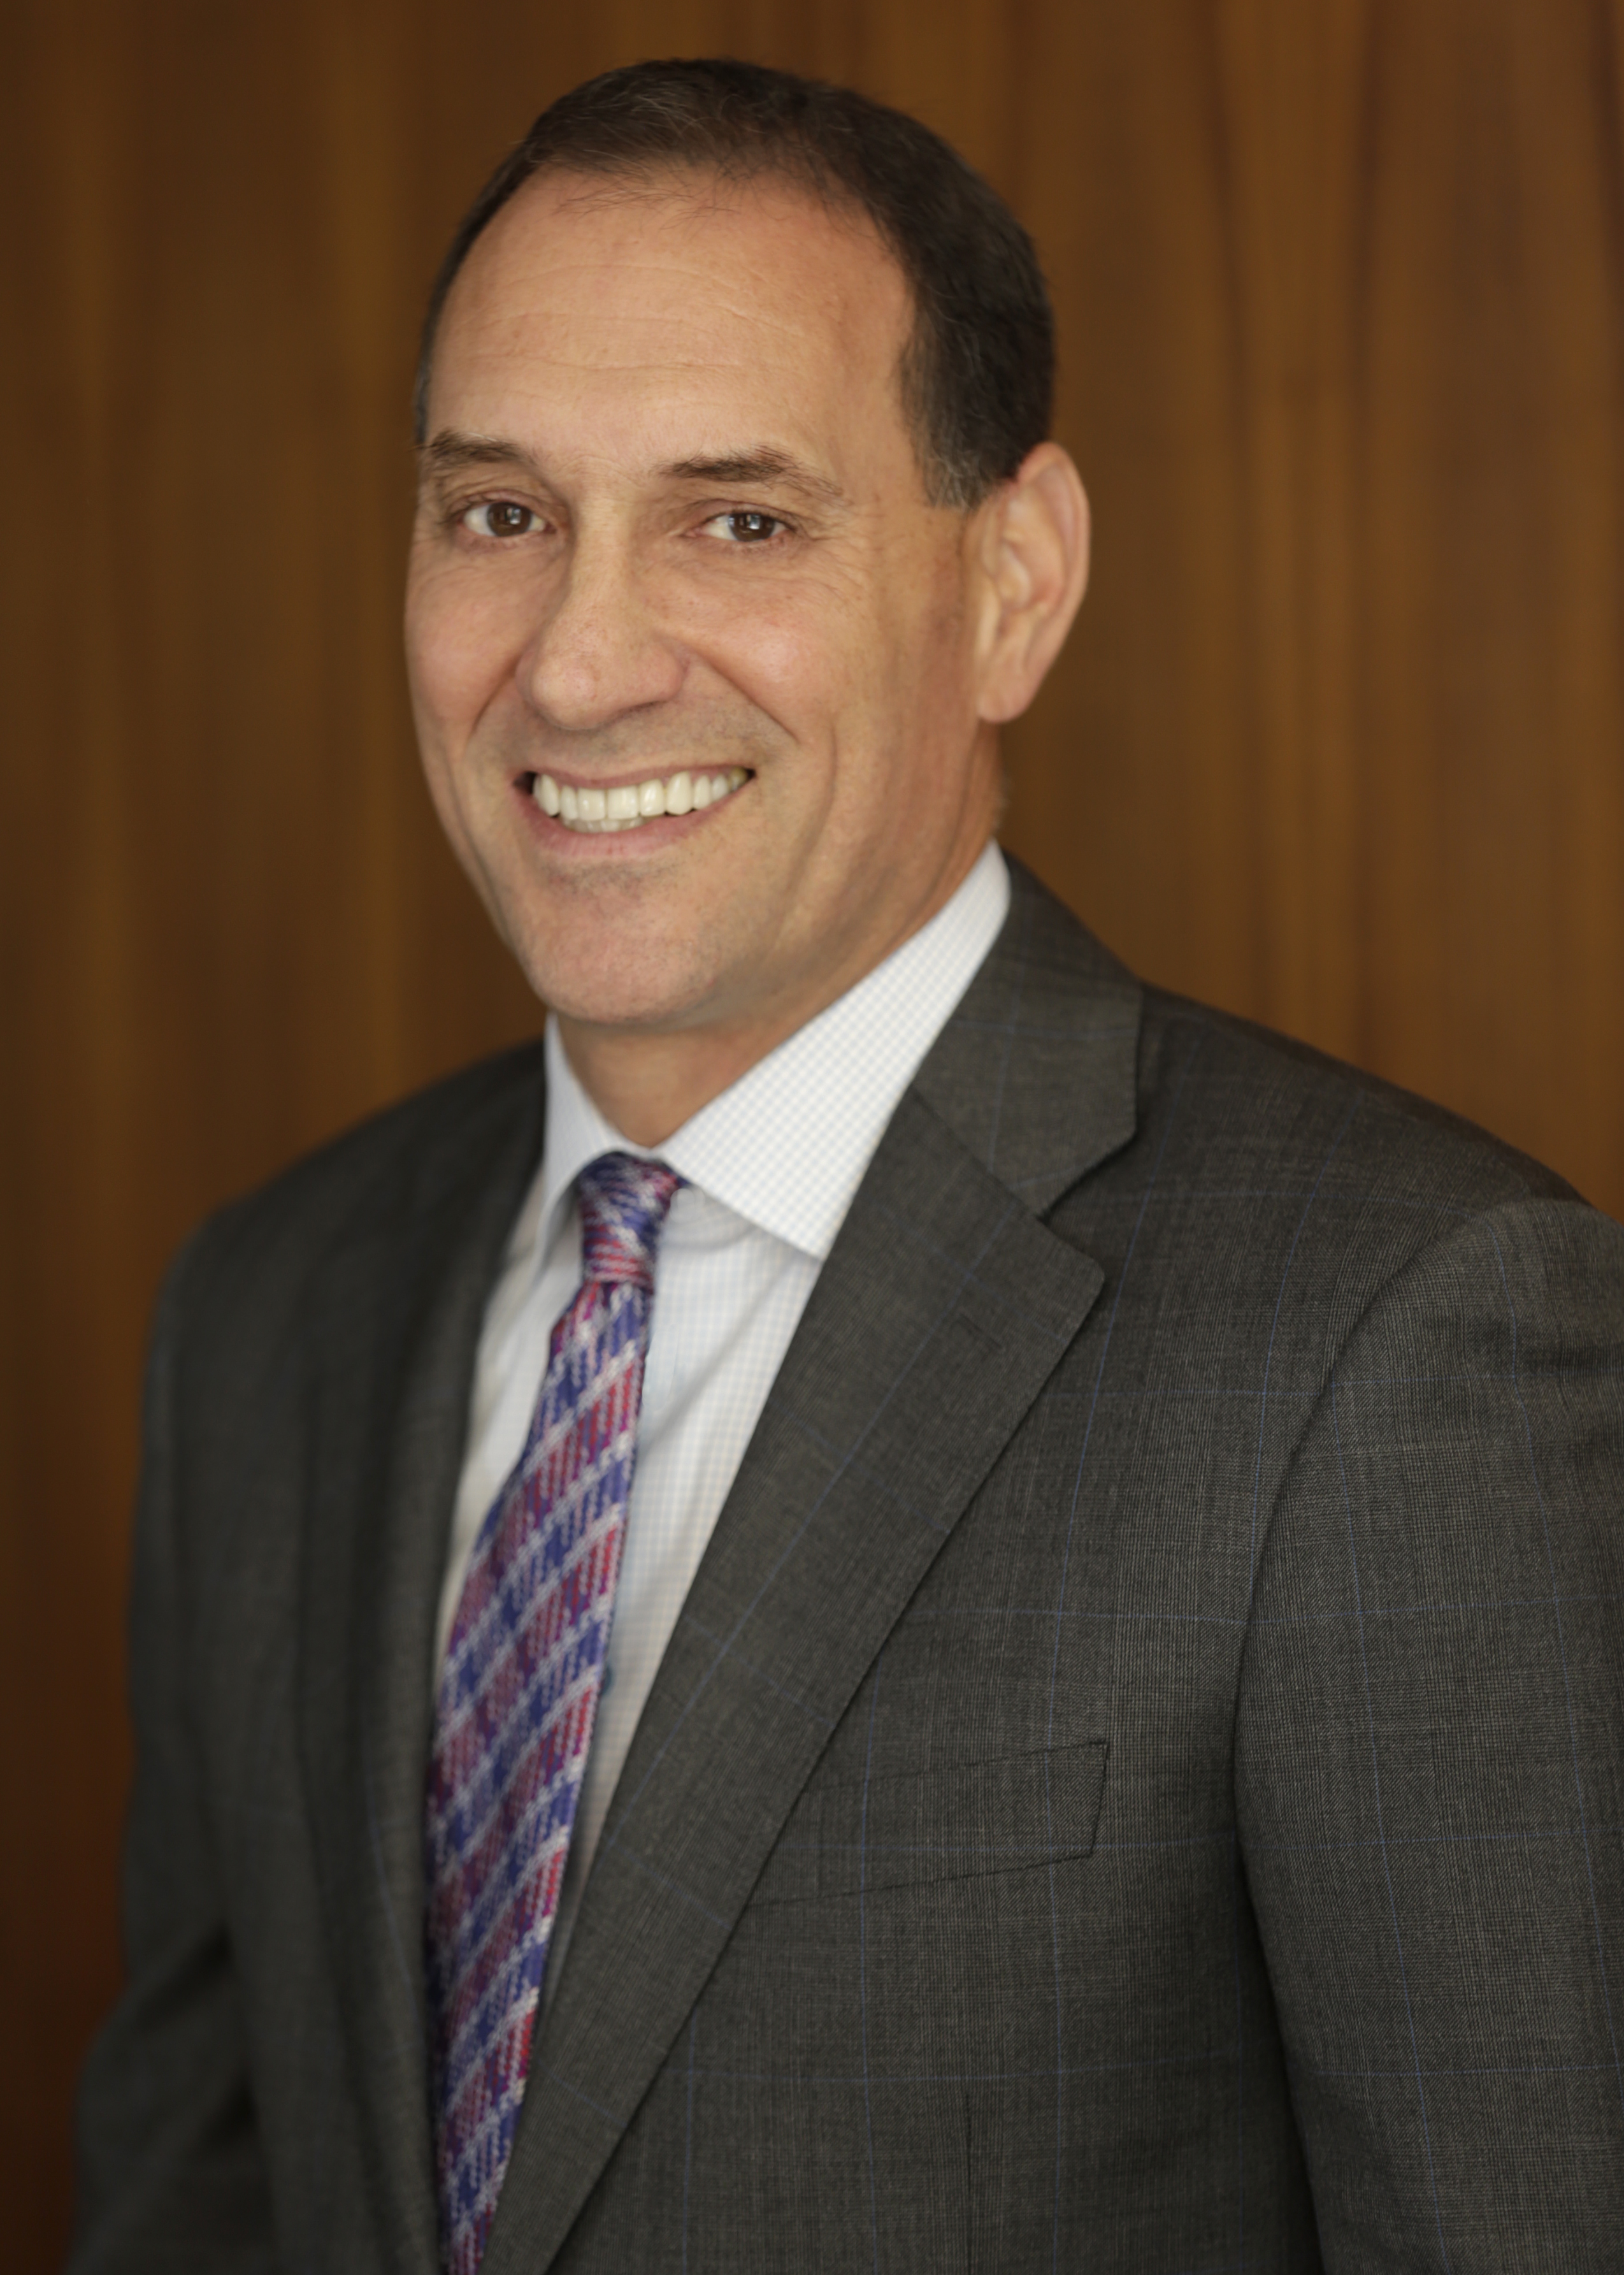 Rich Cavallaro, president and CEO of Skanska USA